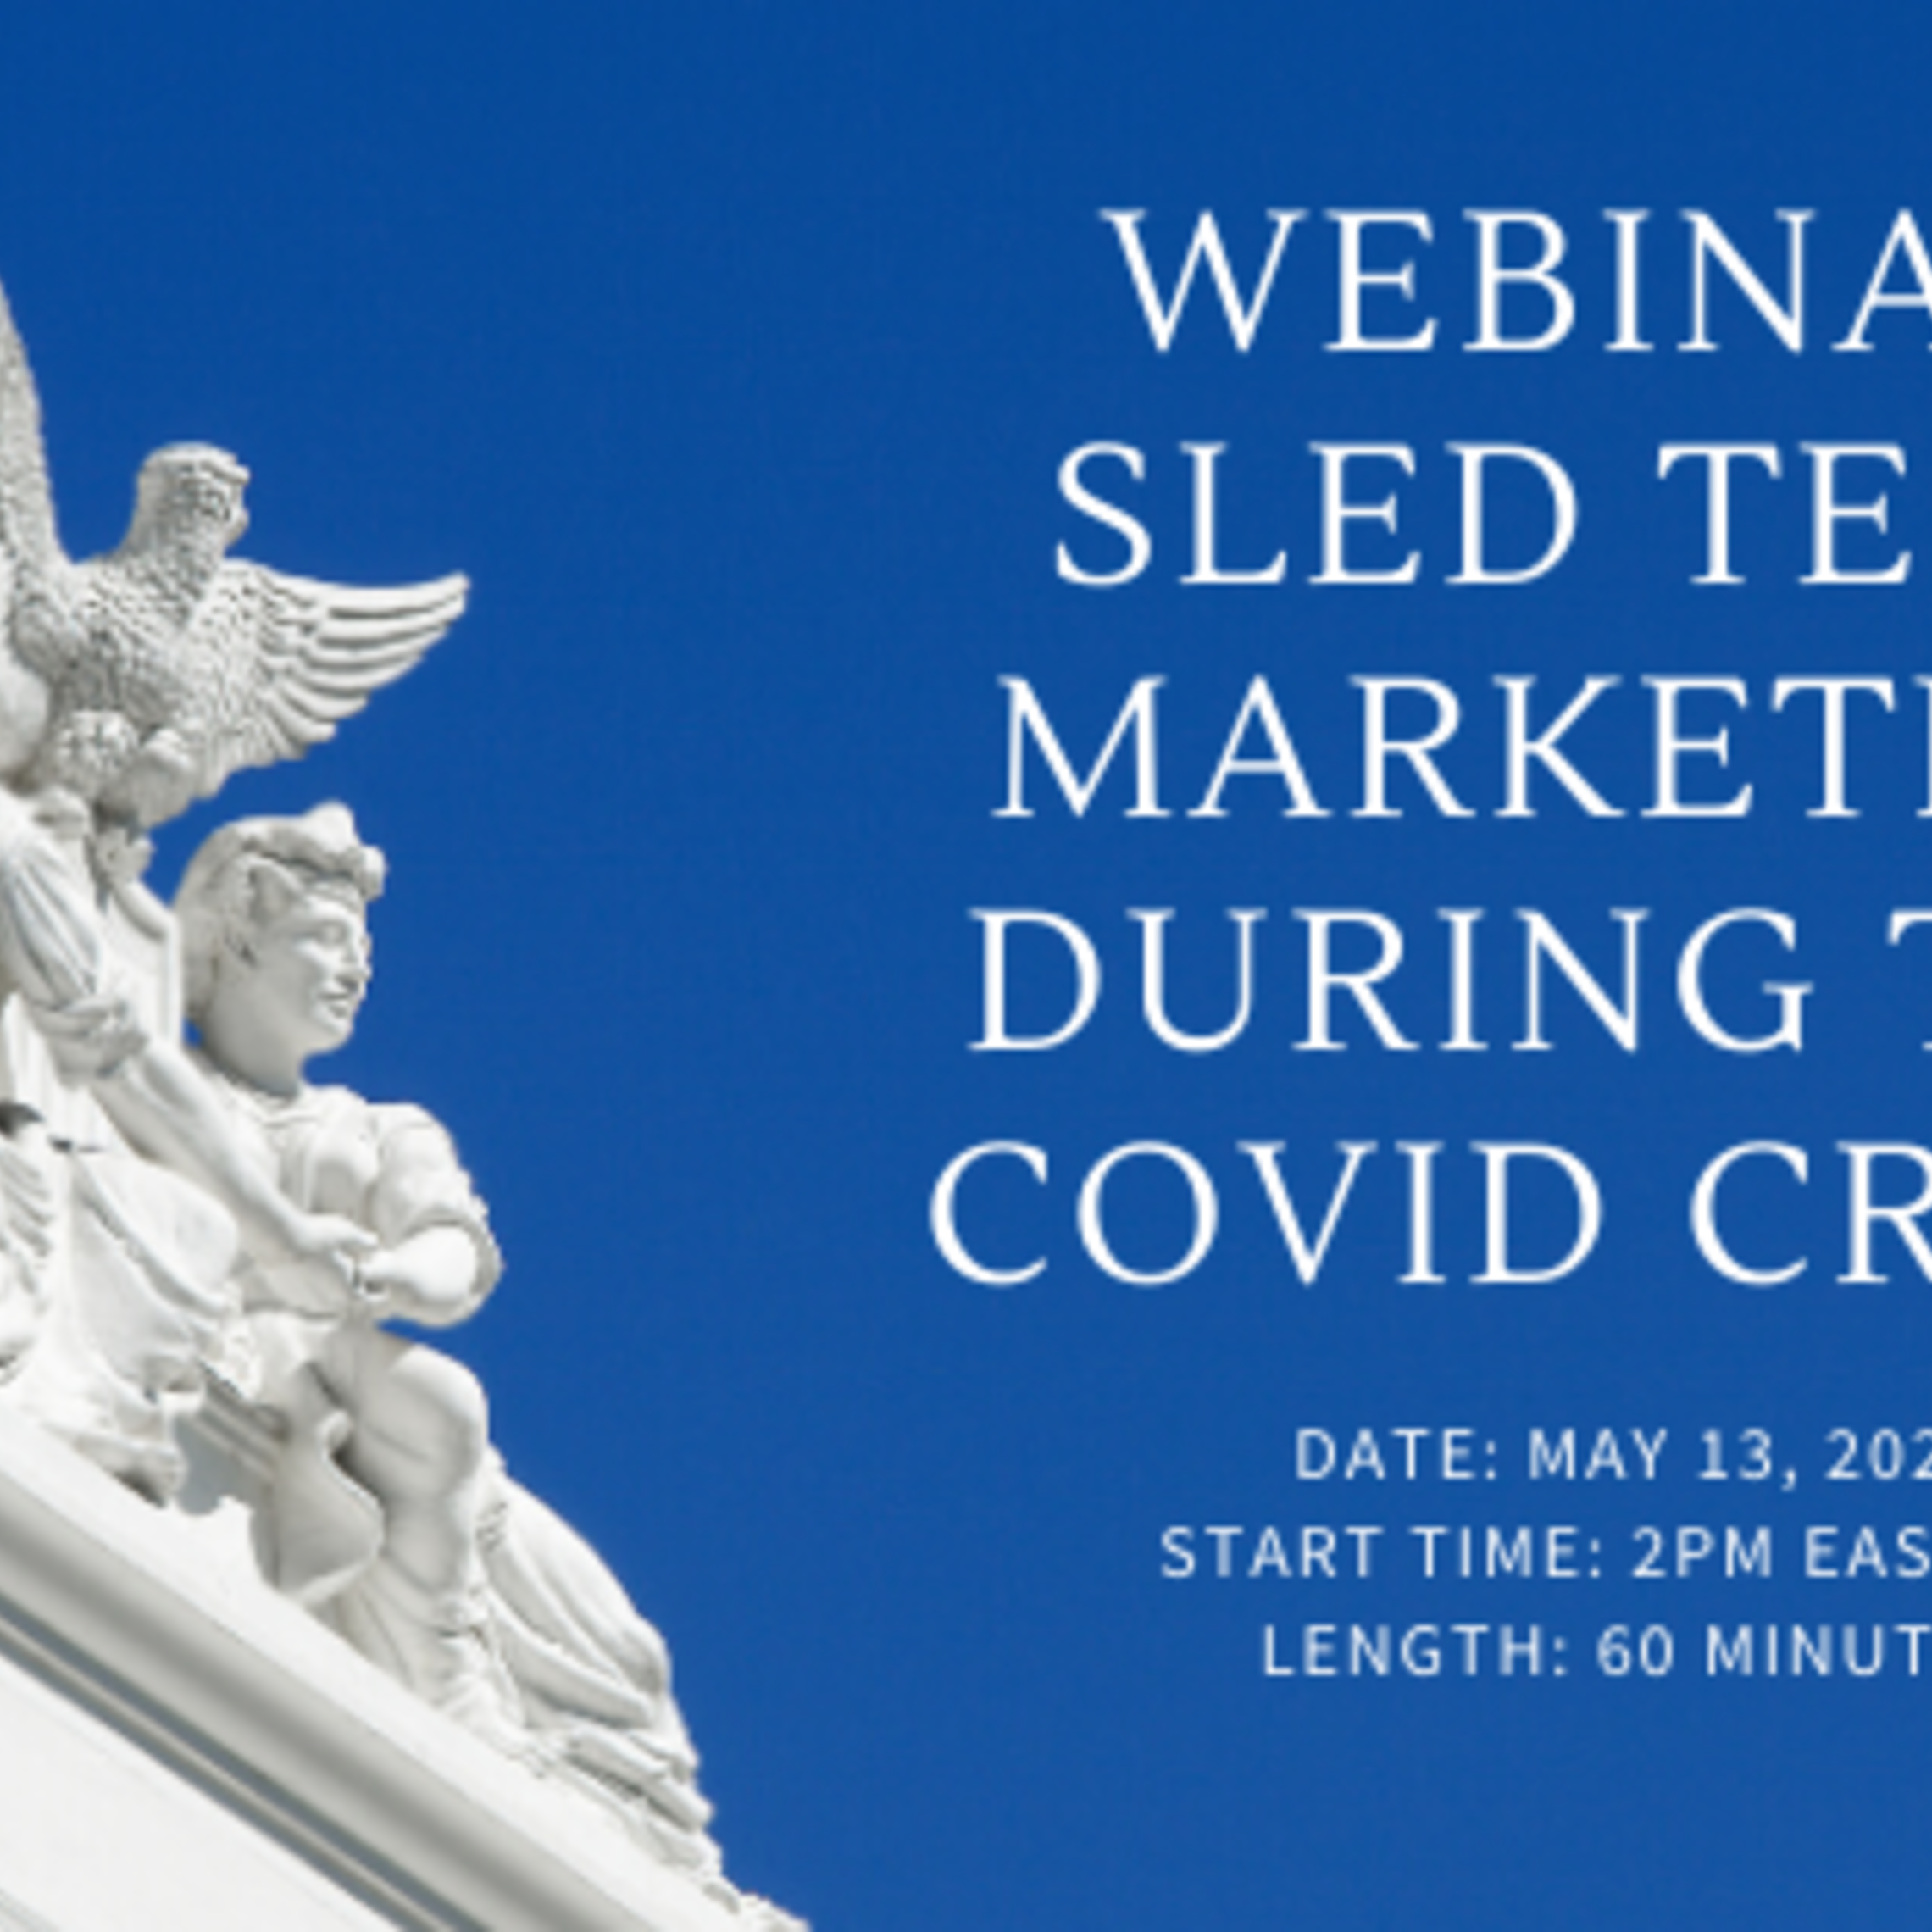 Sled Tech Marketing During The Covid Crisis